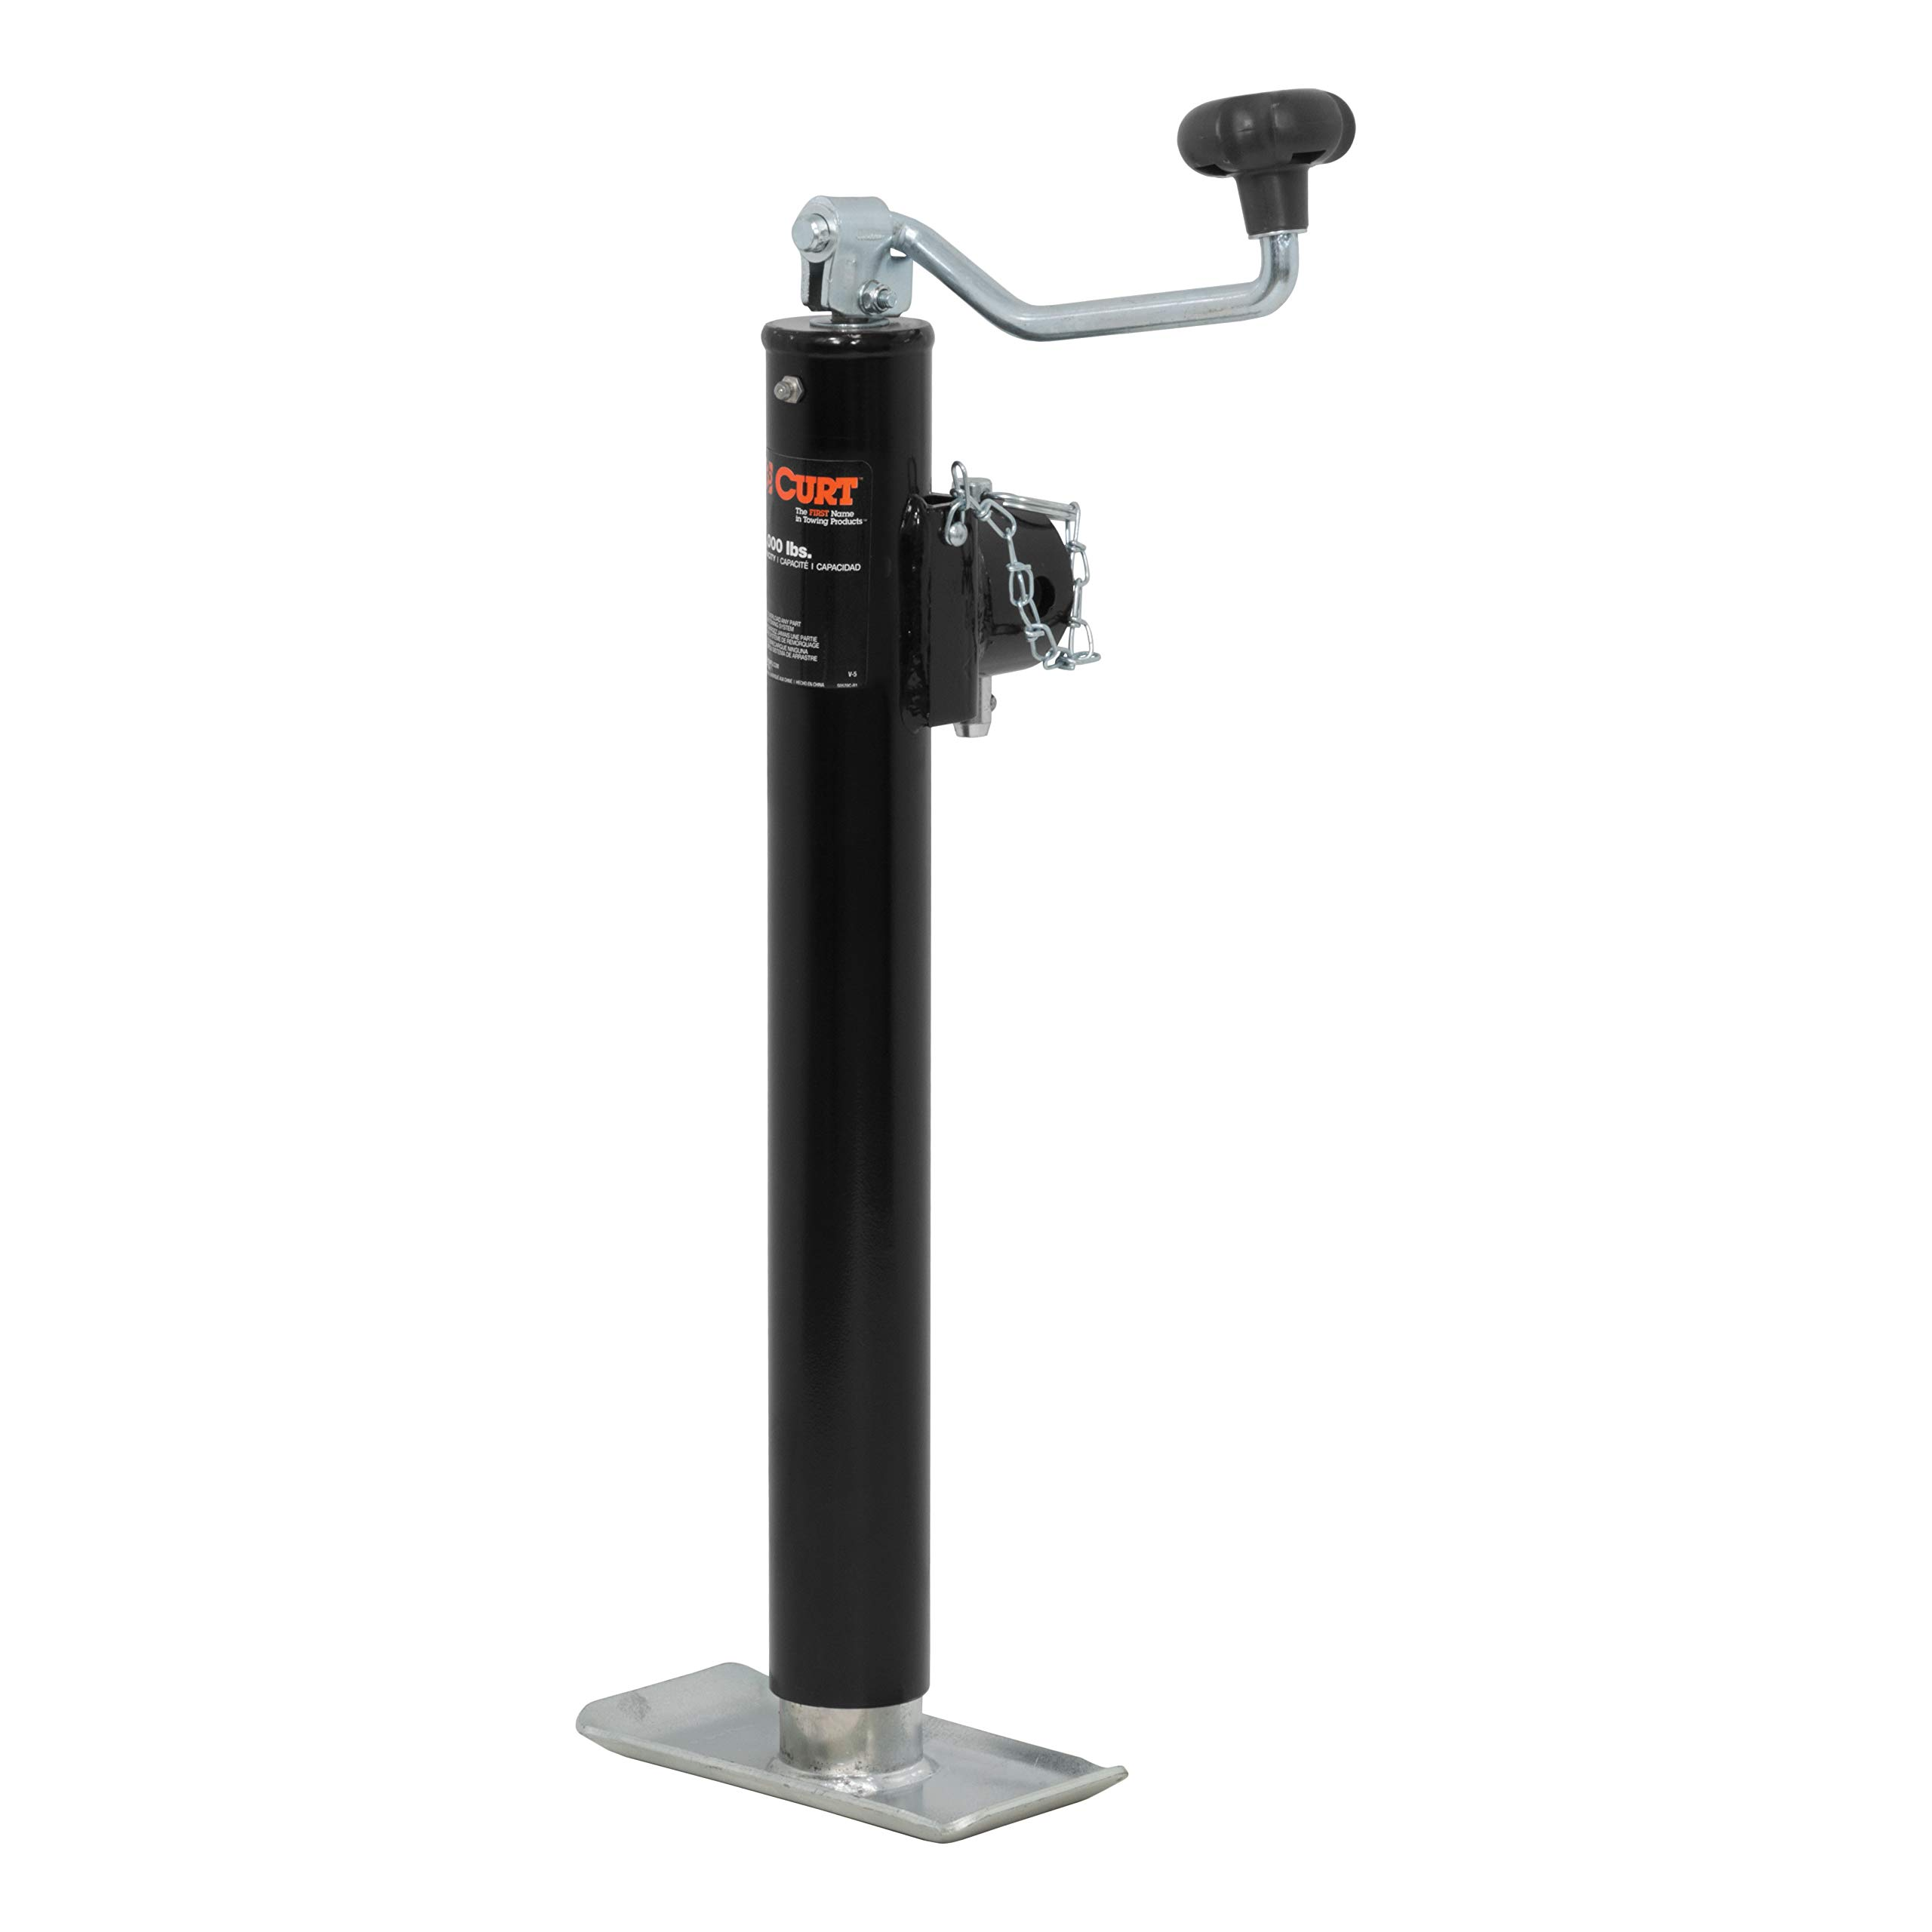 CURT 28356 Weld-On Pipe-Mount Swivel Trailer Jack 5,000 lbs, 15 Inches Vertical Travel by CURT